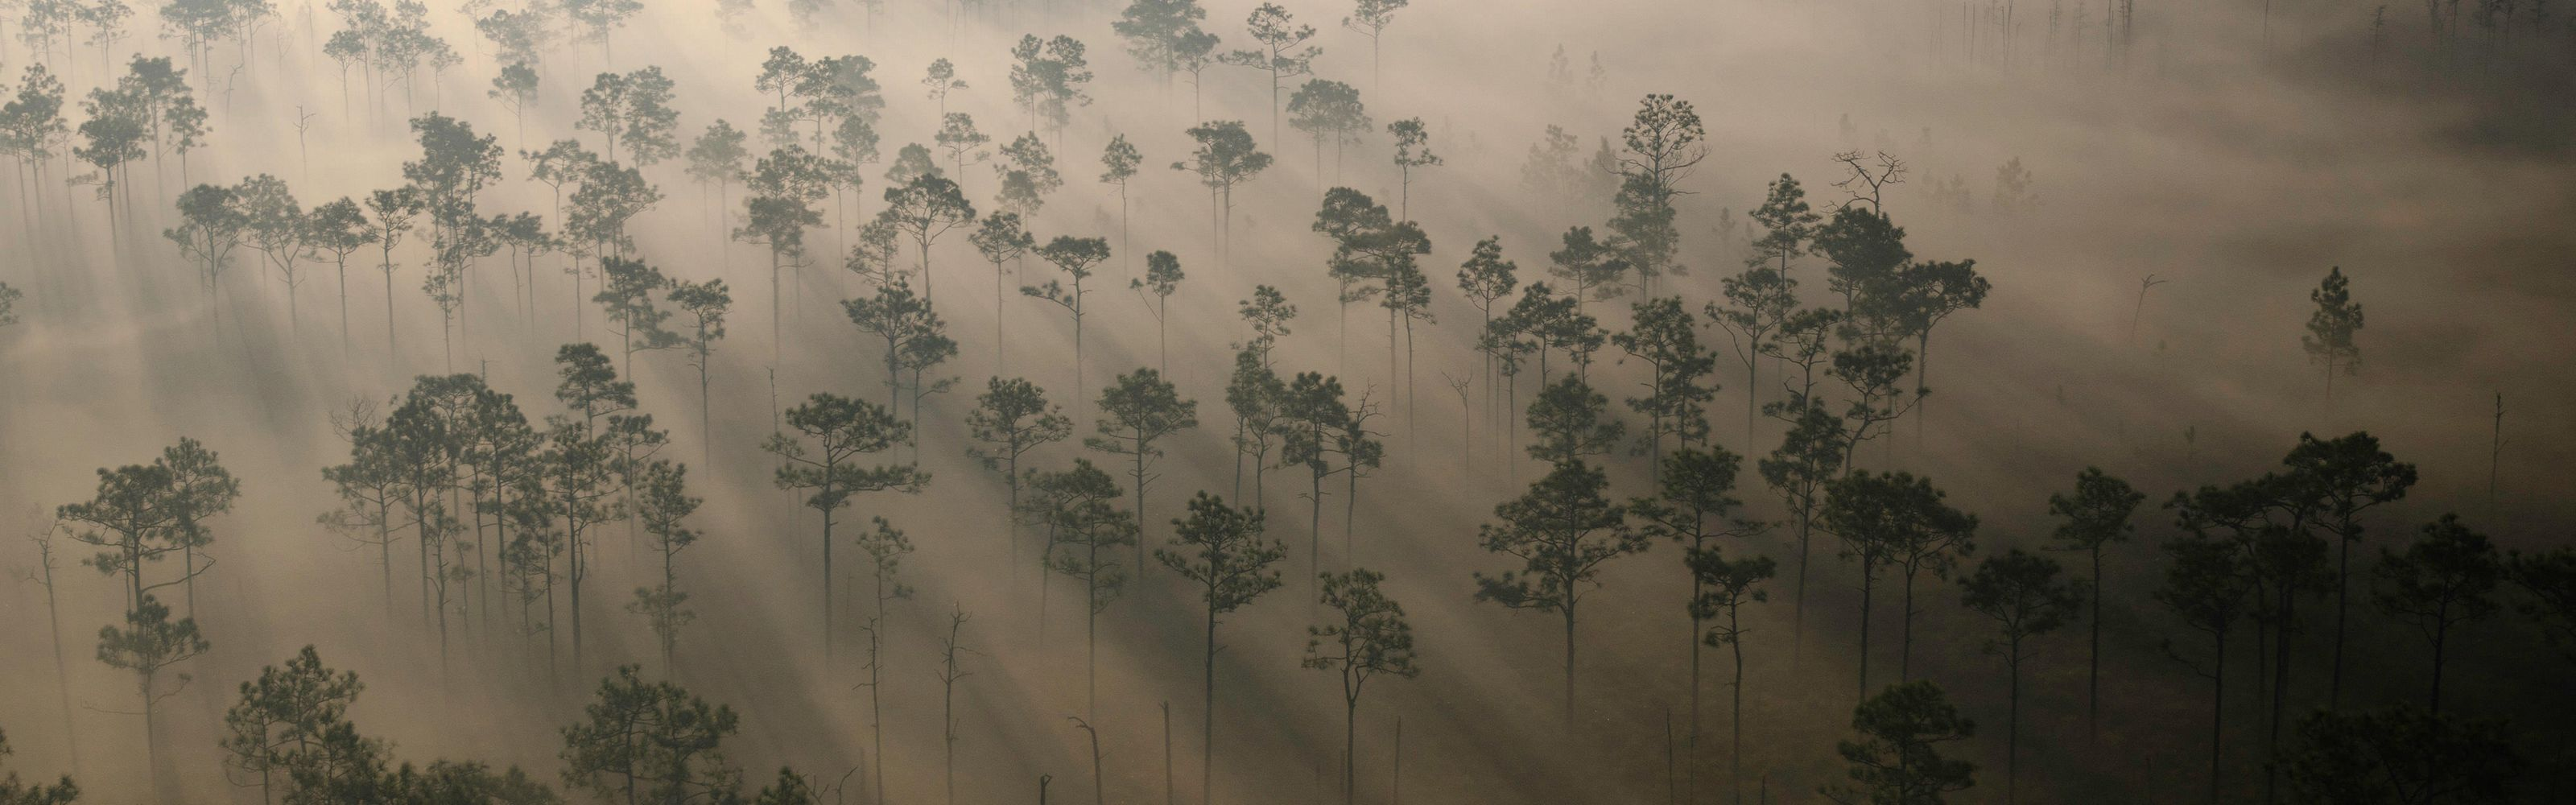 Aerial view of the Conservancy's 12,000-acre Disney Wilderness Preserve in Florida.